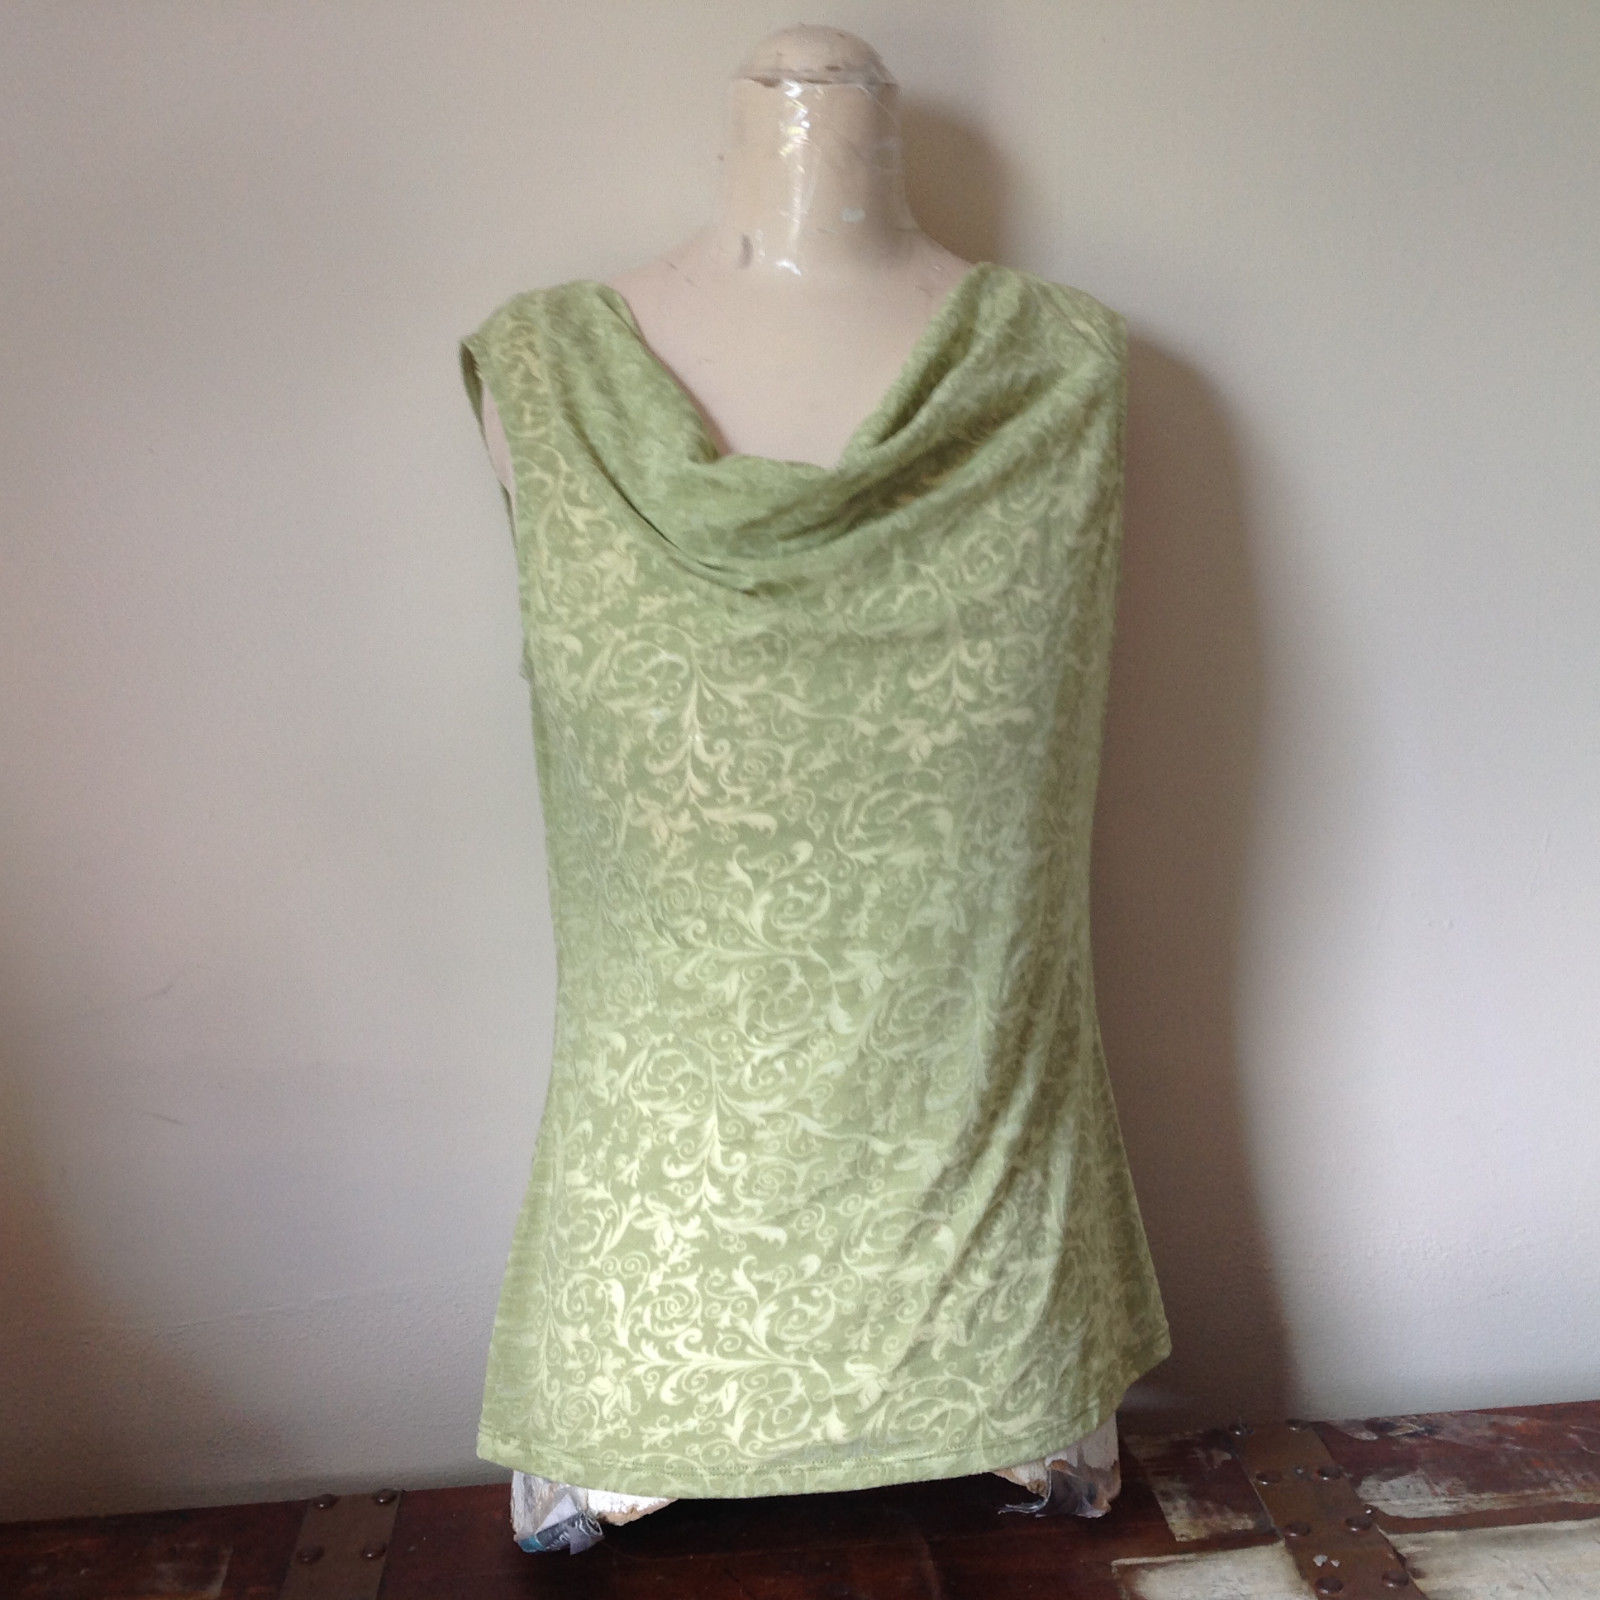 Sage Green Burn Out Design Sleeveless Top with Cowl Neck No Size Tag